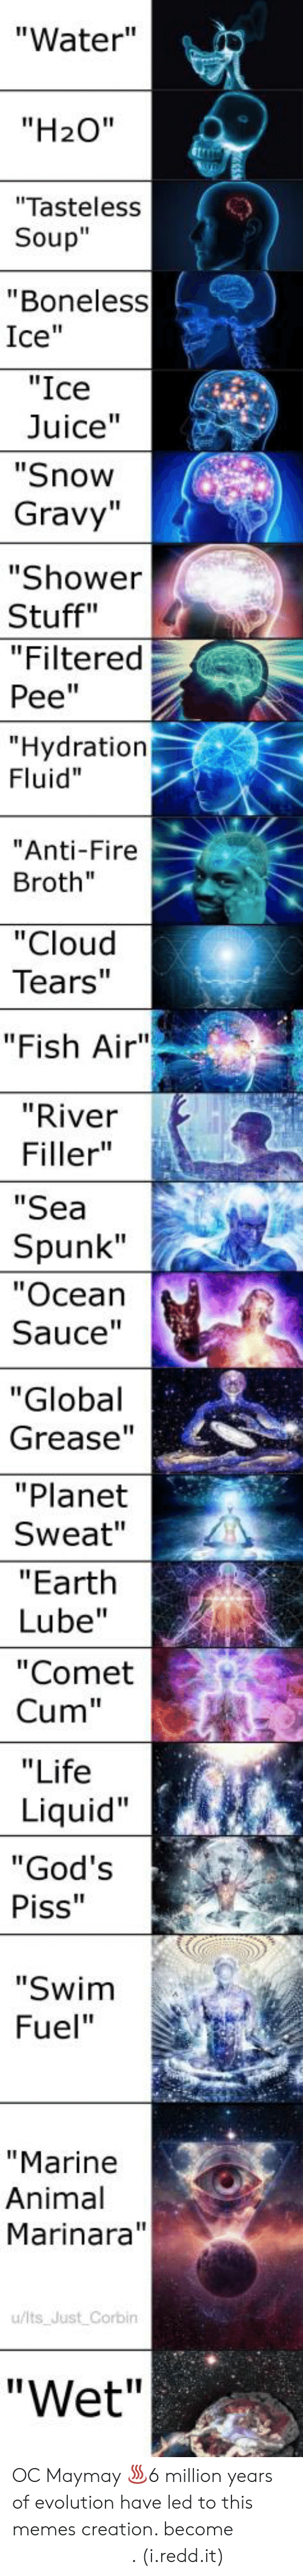 "Cum, Fire, and Juice: ""Water""  ""H20""  ""Tasteless  Soup""  ""Boneless  Ice""  ""Ice  Juice""  ""Snow  Gravy""  ""Shower  Stuff""  ""Filtered  Pee""  Hydration  Fluid""  Anti-Fire  Broth""  ""Cloud  Tears""  ""Fish Air""  ""River  Filler""  ""Sea  Spunk""  ""Ocean  Sauce  ""Global  Grease'""  ""Planet  Sweat""  ""Earth  Lube""  ""Comet  Cum""  ""Life  Liquid""  God's  Piss""  ""Swim  Fuel""  ""Marine  Animal  Marinara""  u/lts Just Corbin  ""Wet"" OC Maymay ♨6 million years of evolution have led to this memes creation. become 𝓮 𝓷 𝓵 𝓲 𝓰 𝓱 𝓽 𝓮 𝓷 𝓮 𝓭. (i.redd.it)"